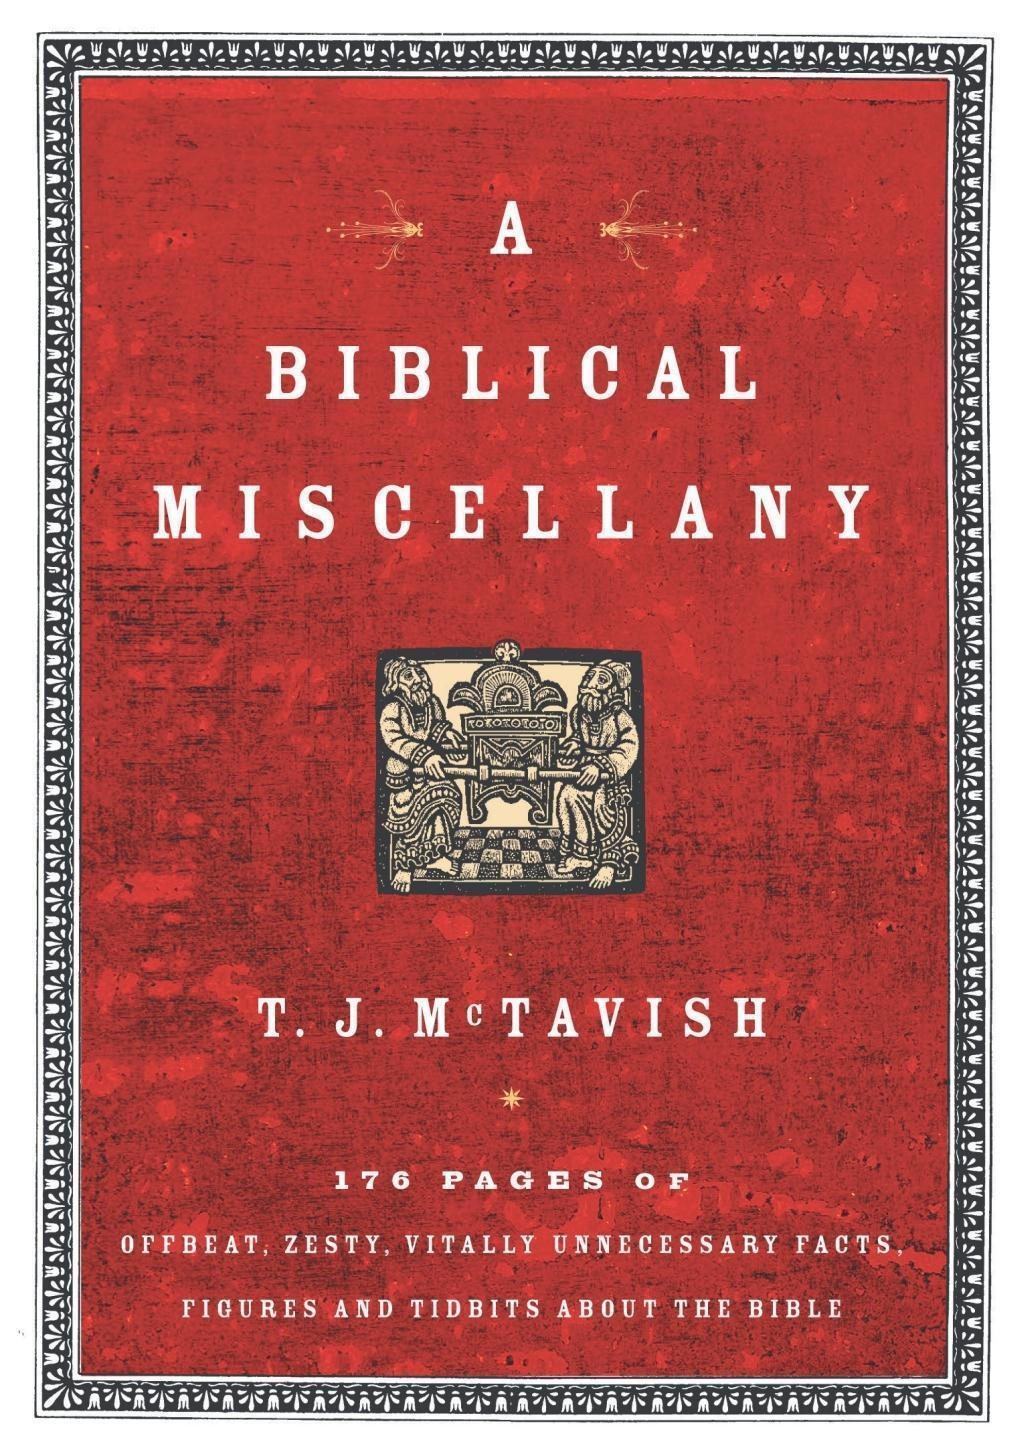 A Biblical Miscellany